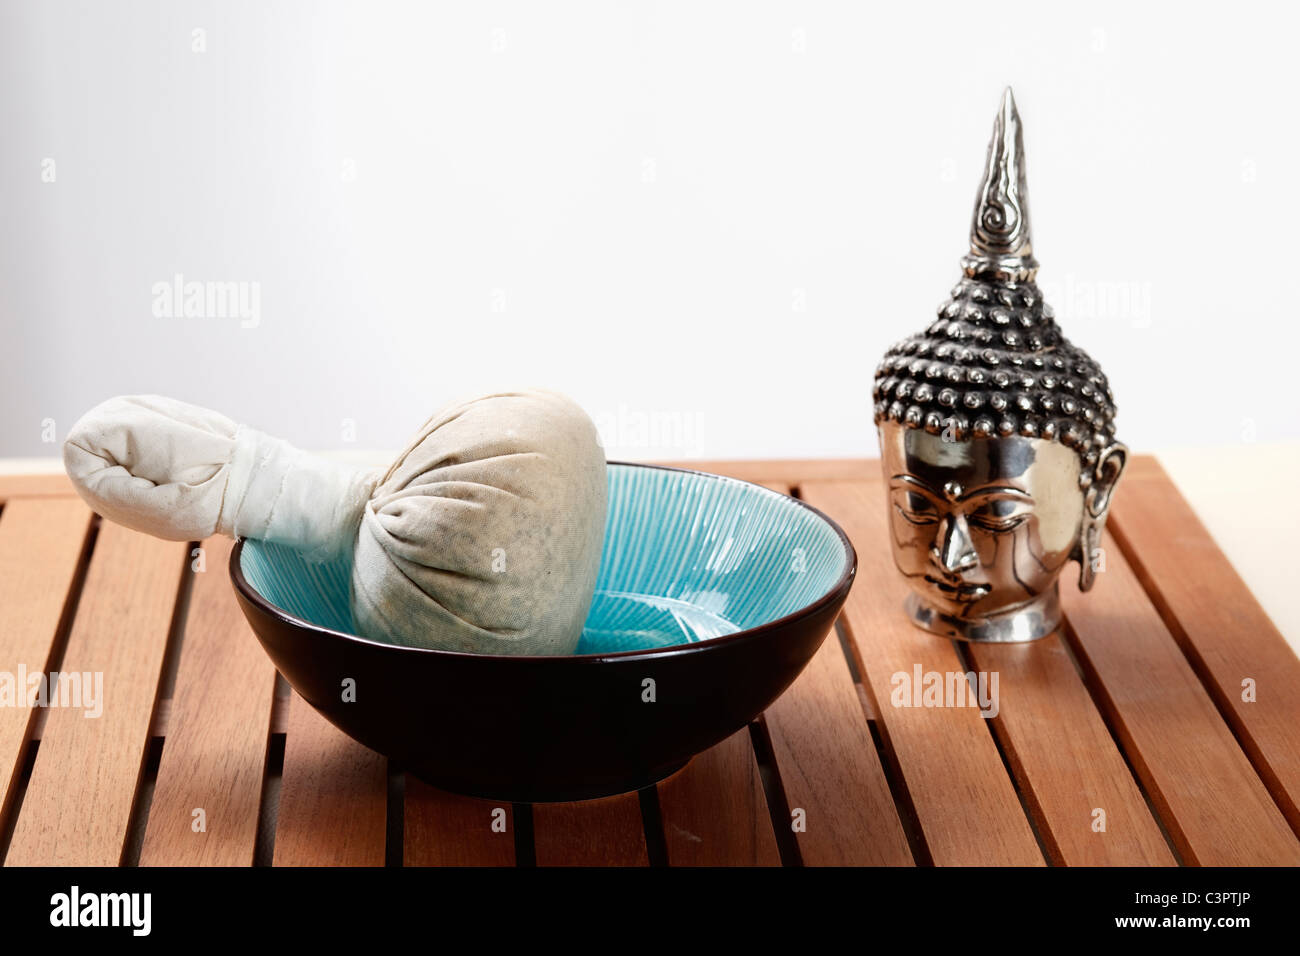 Buddha head with herb pouch in bowl on table - Stock Image